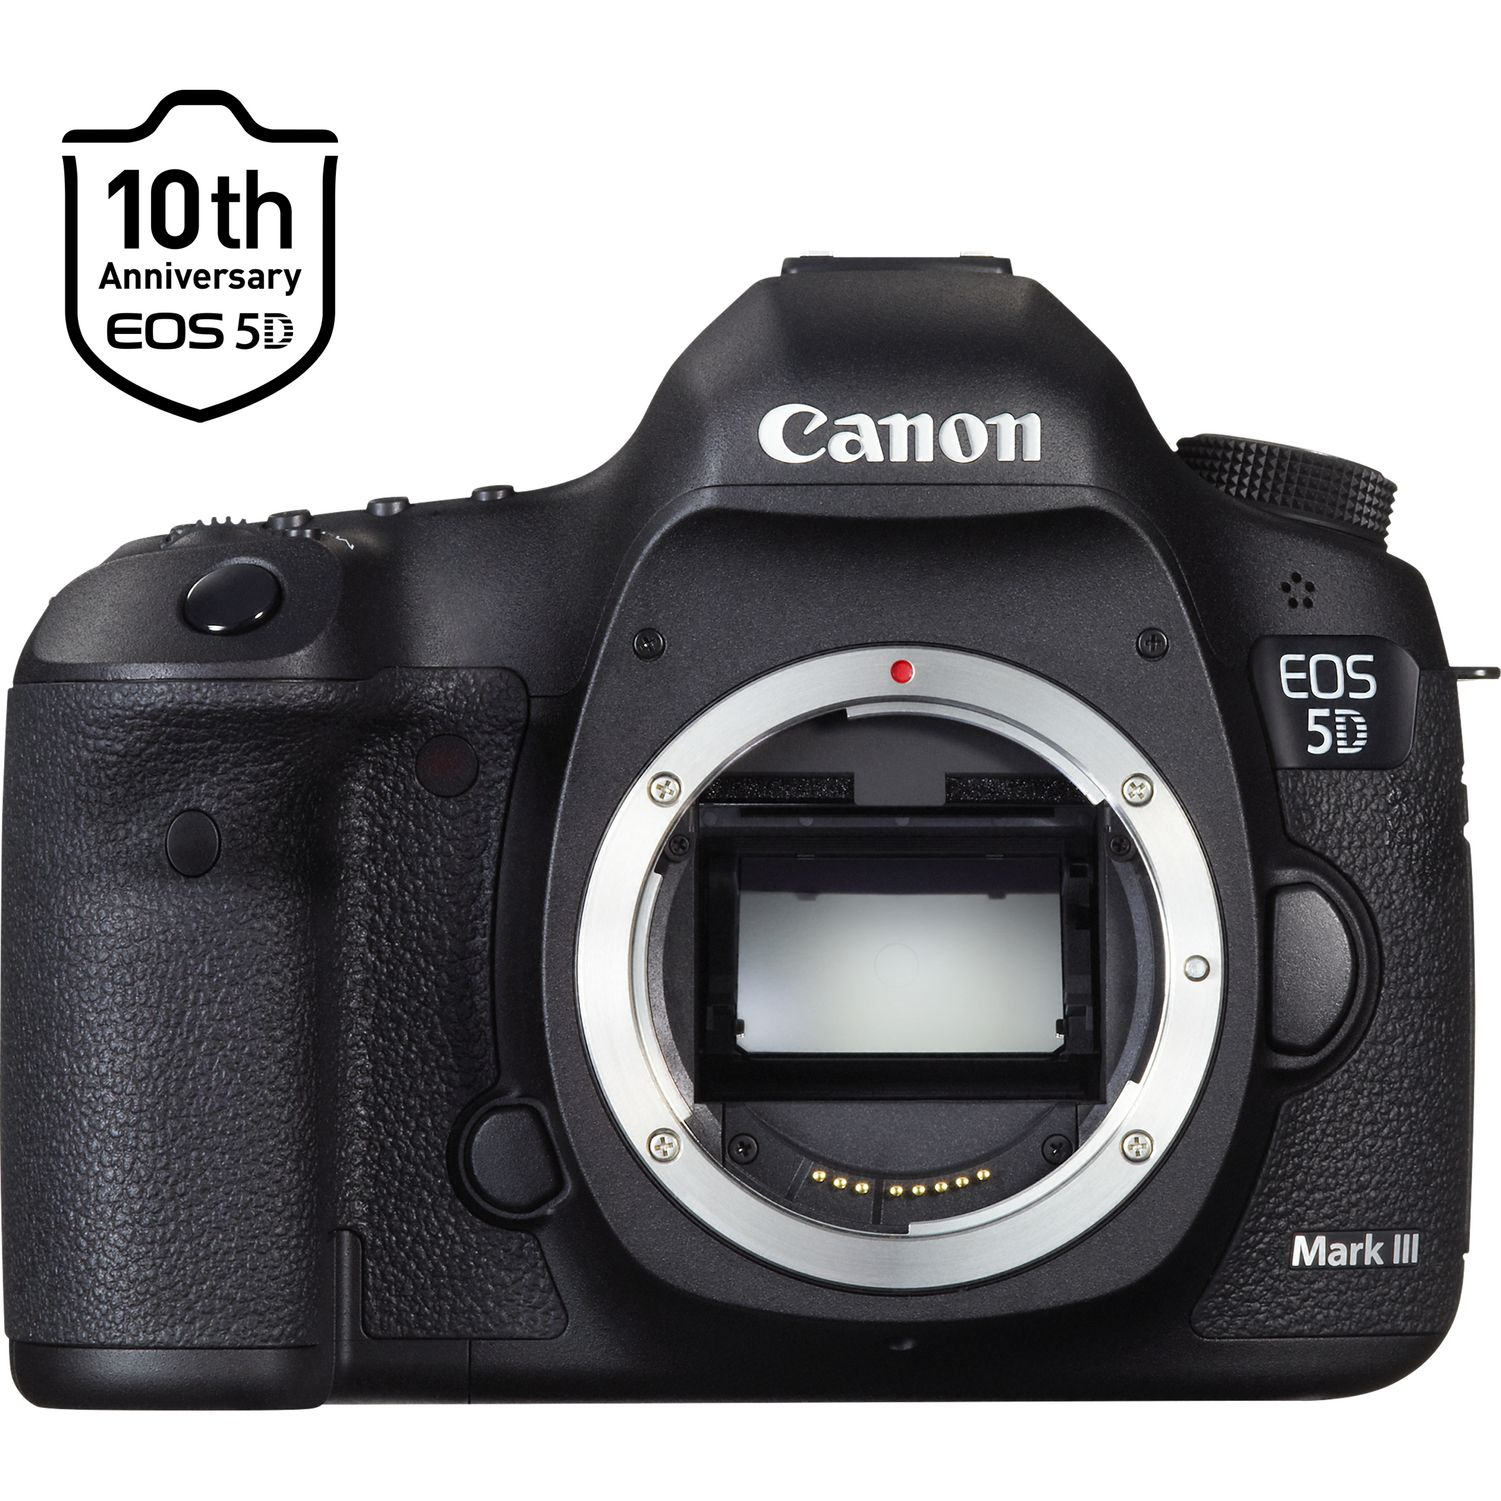 Eos 5d mark iii deals